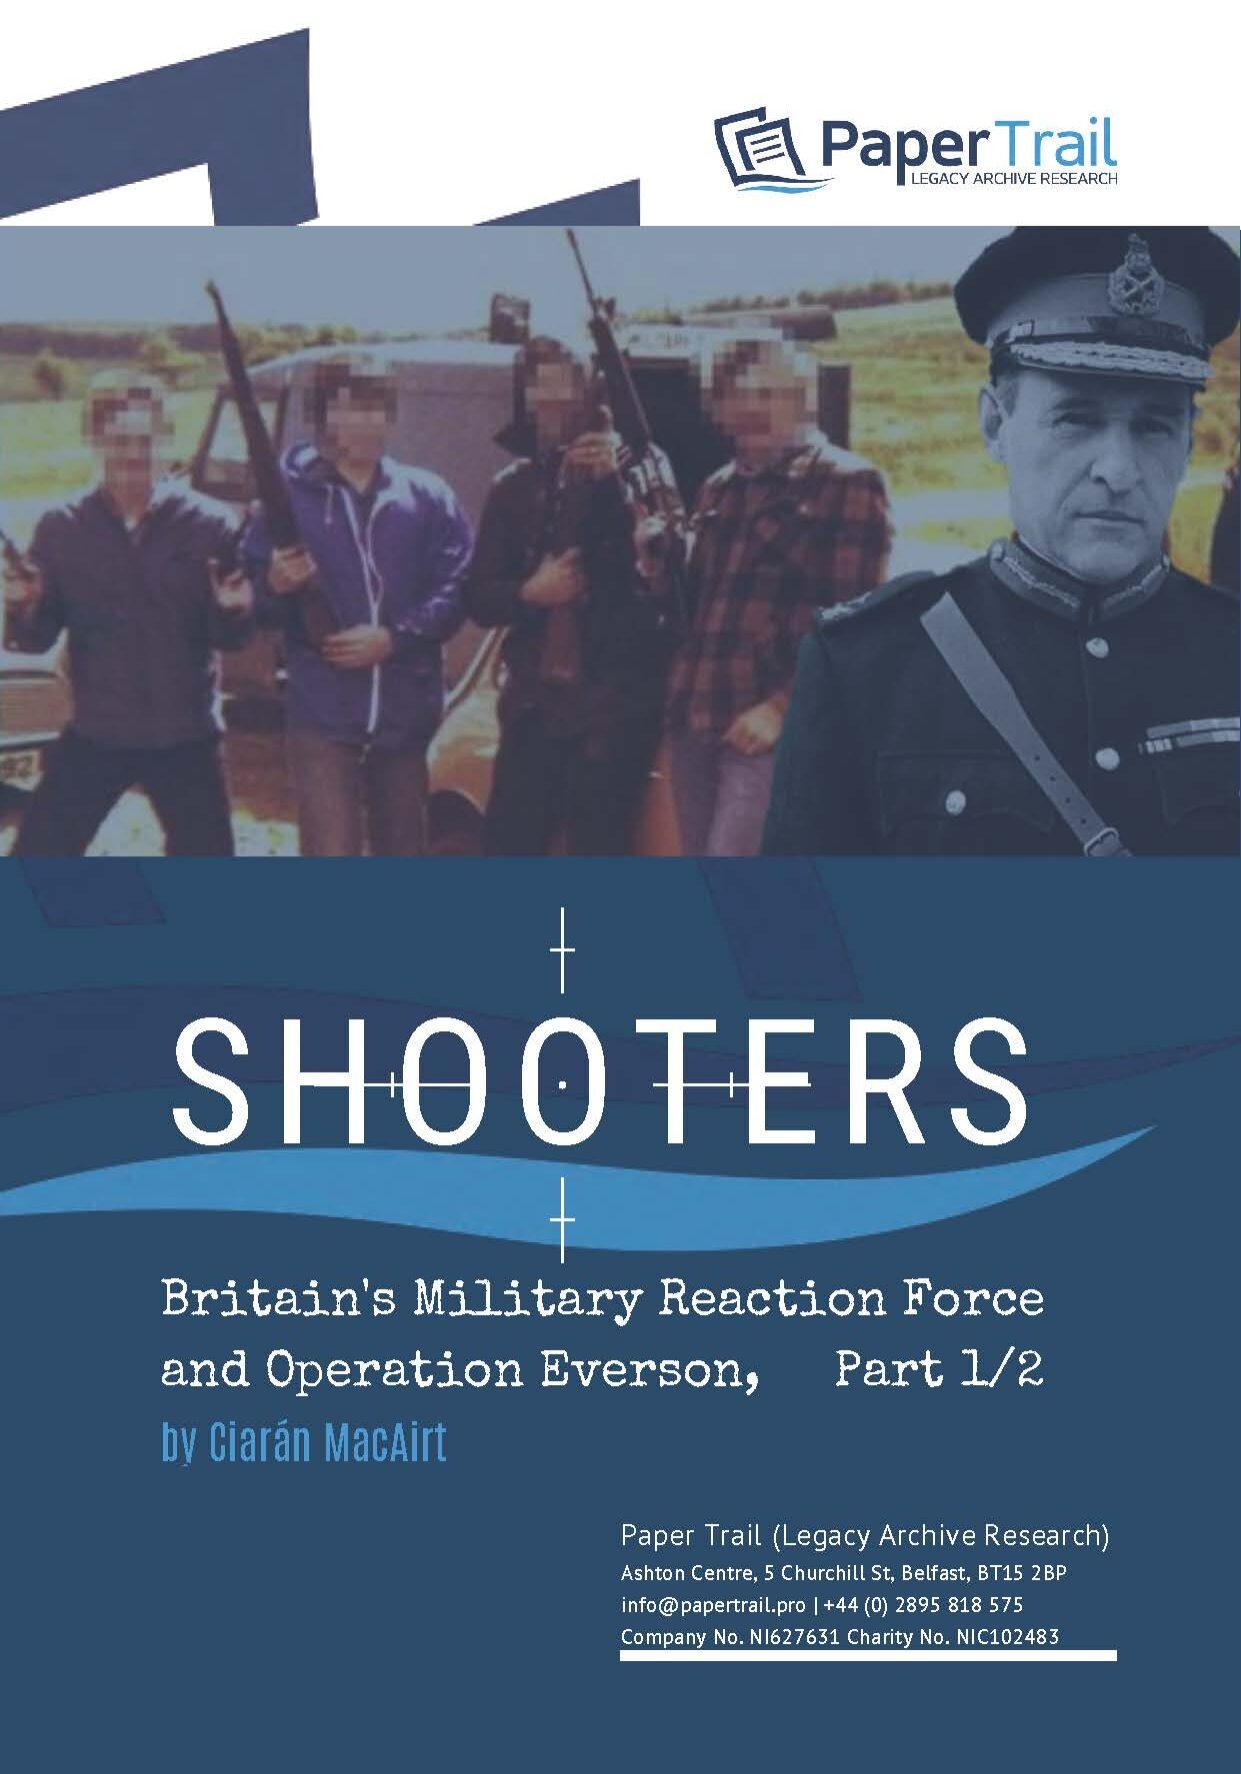 Paper Trail MRF 1 - Shooters